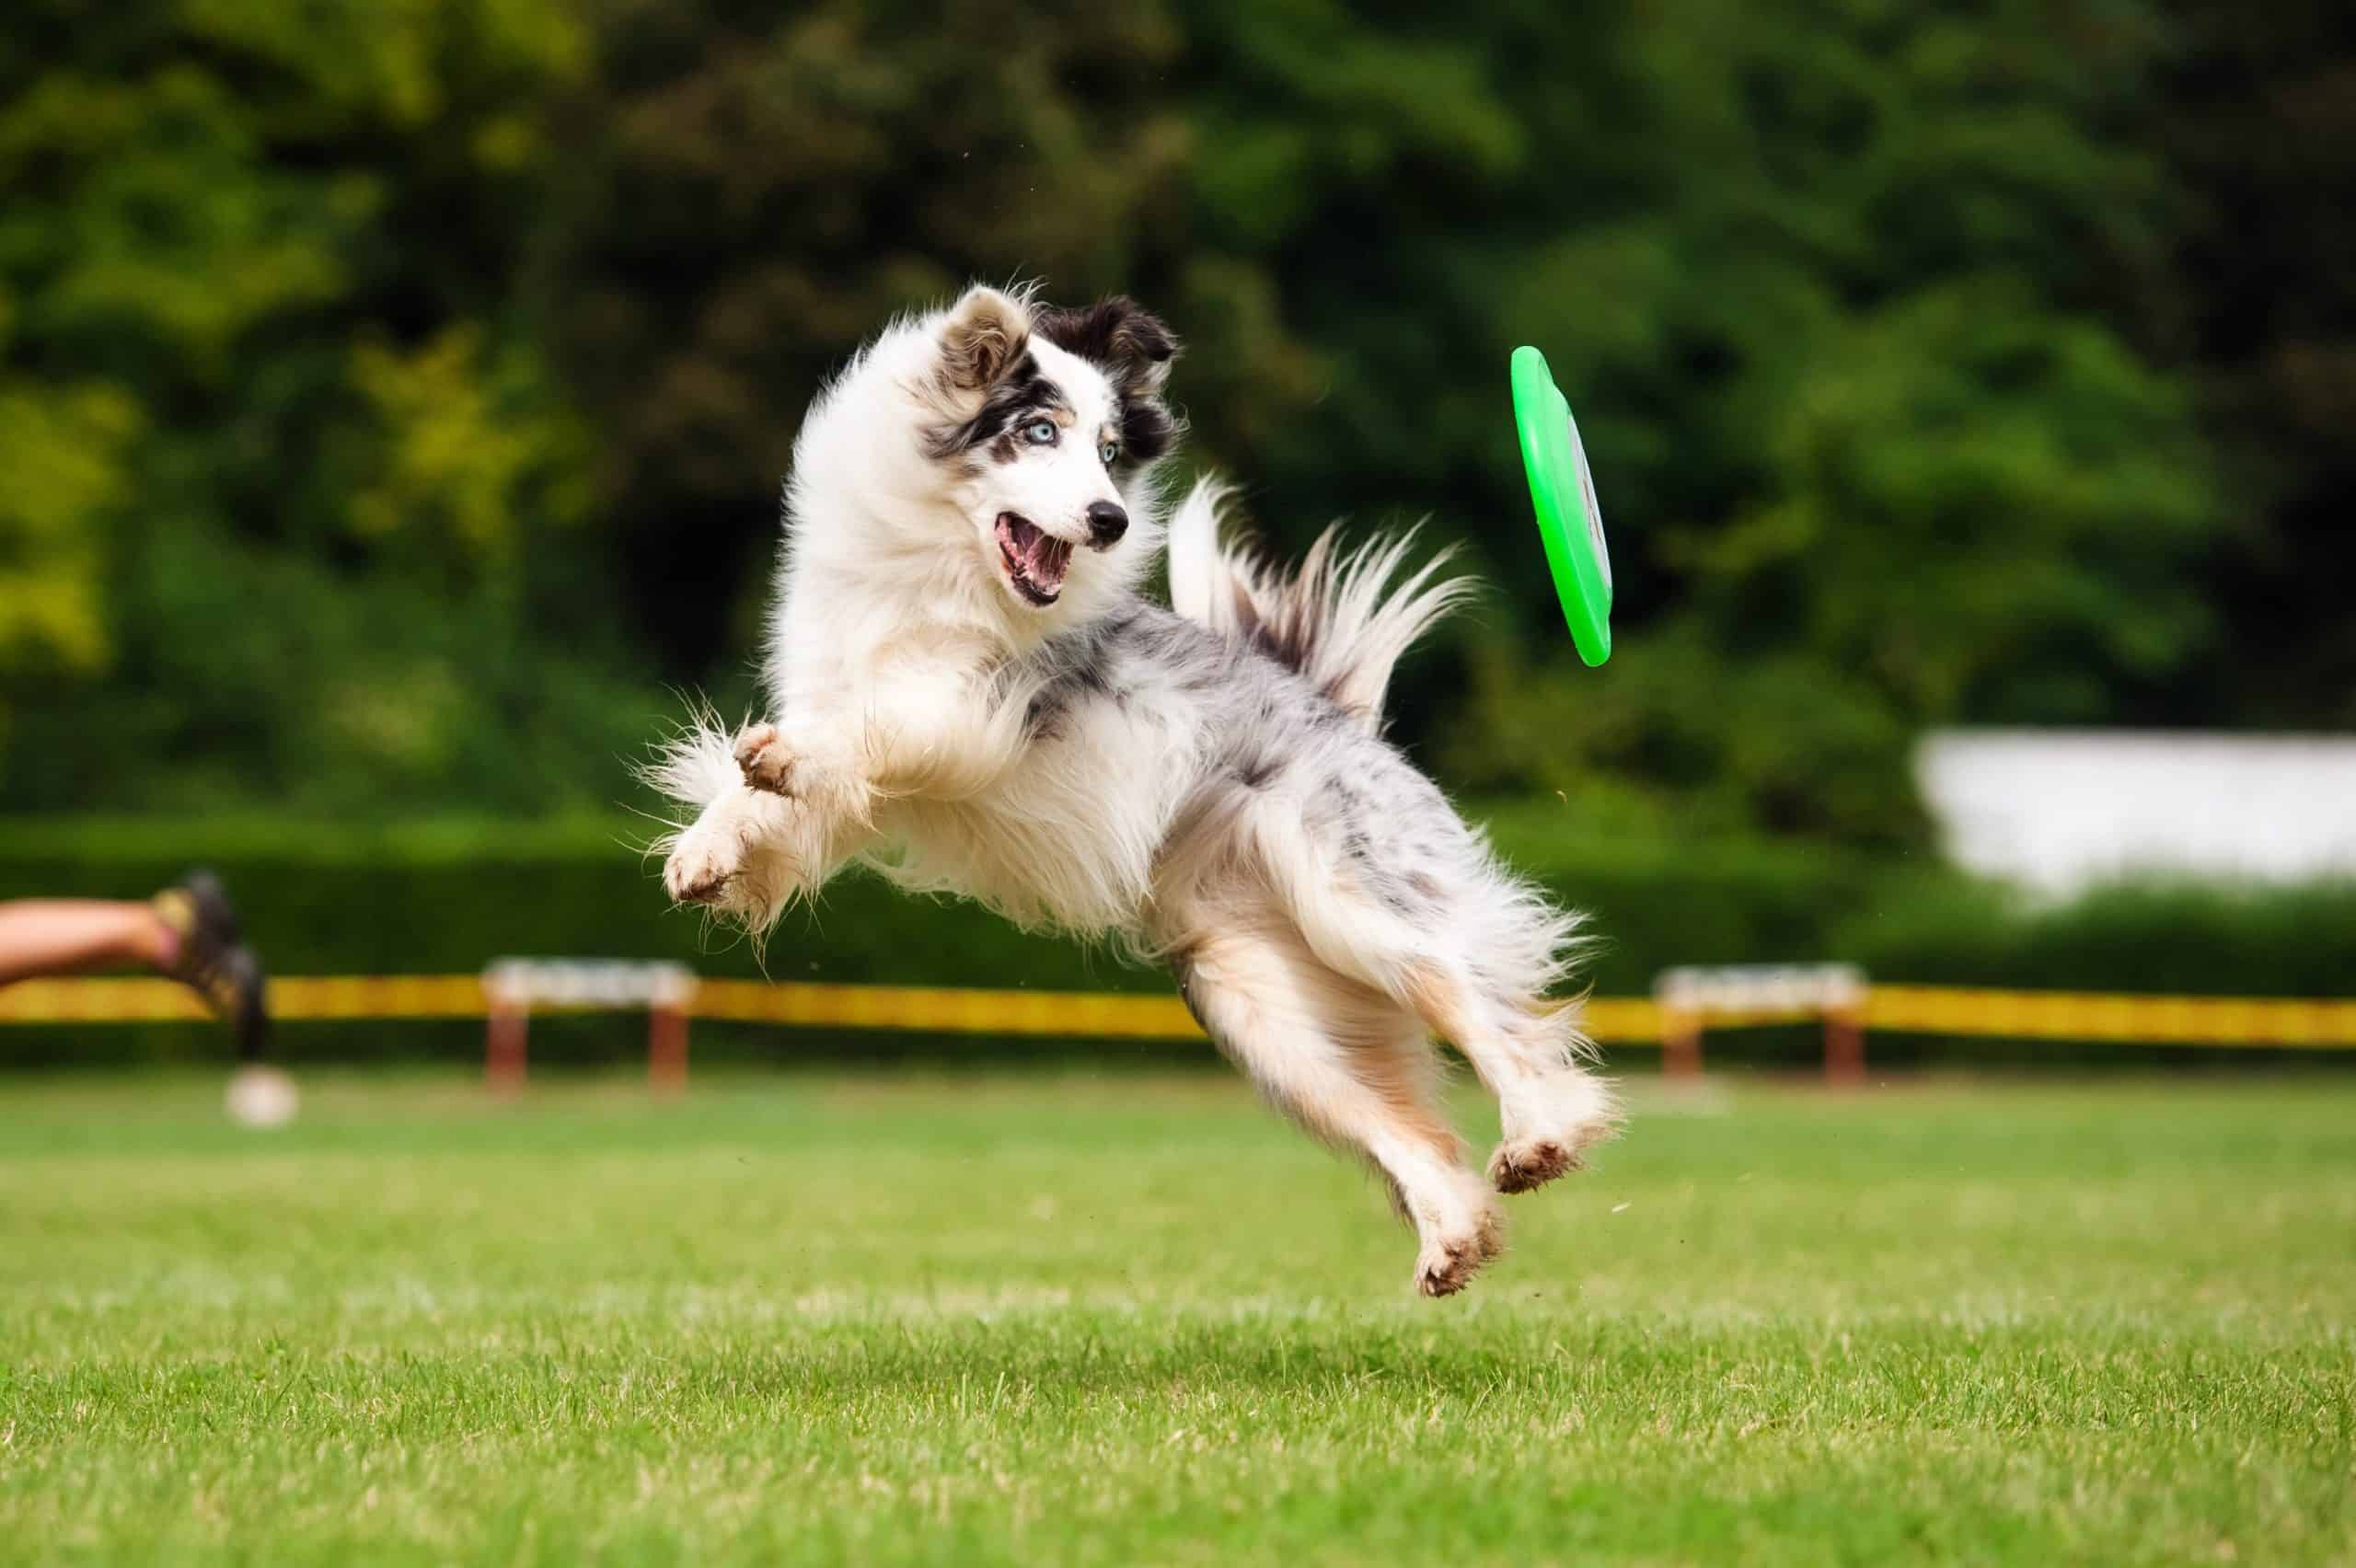 Playing frisbee with your dog is a good way to exercise.